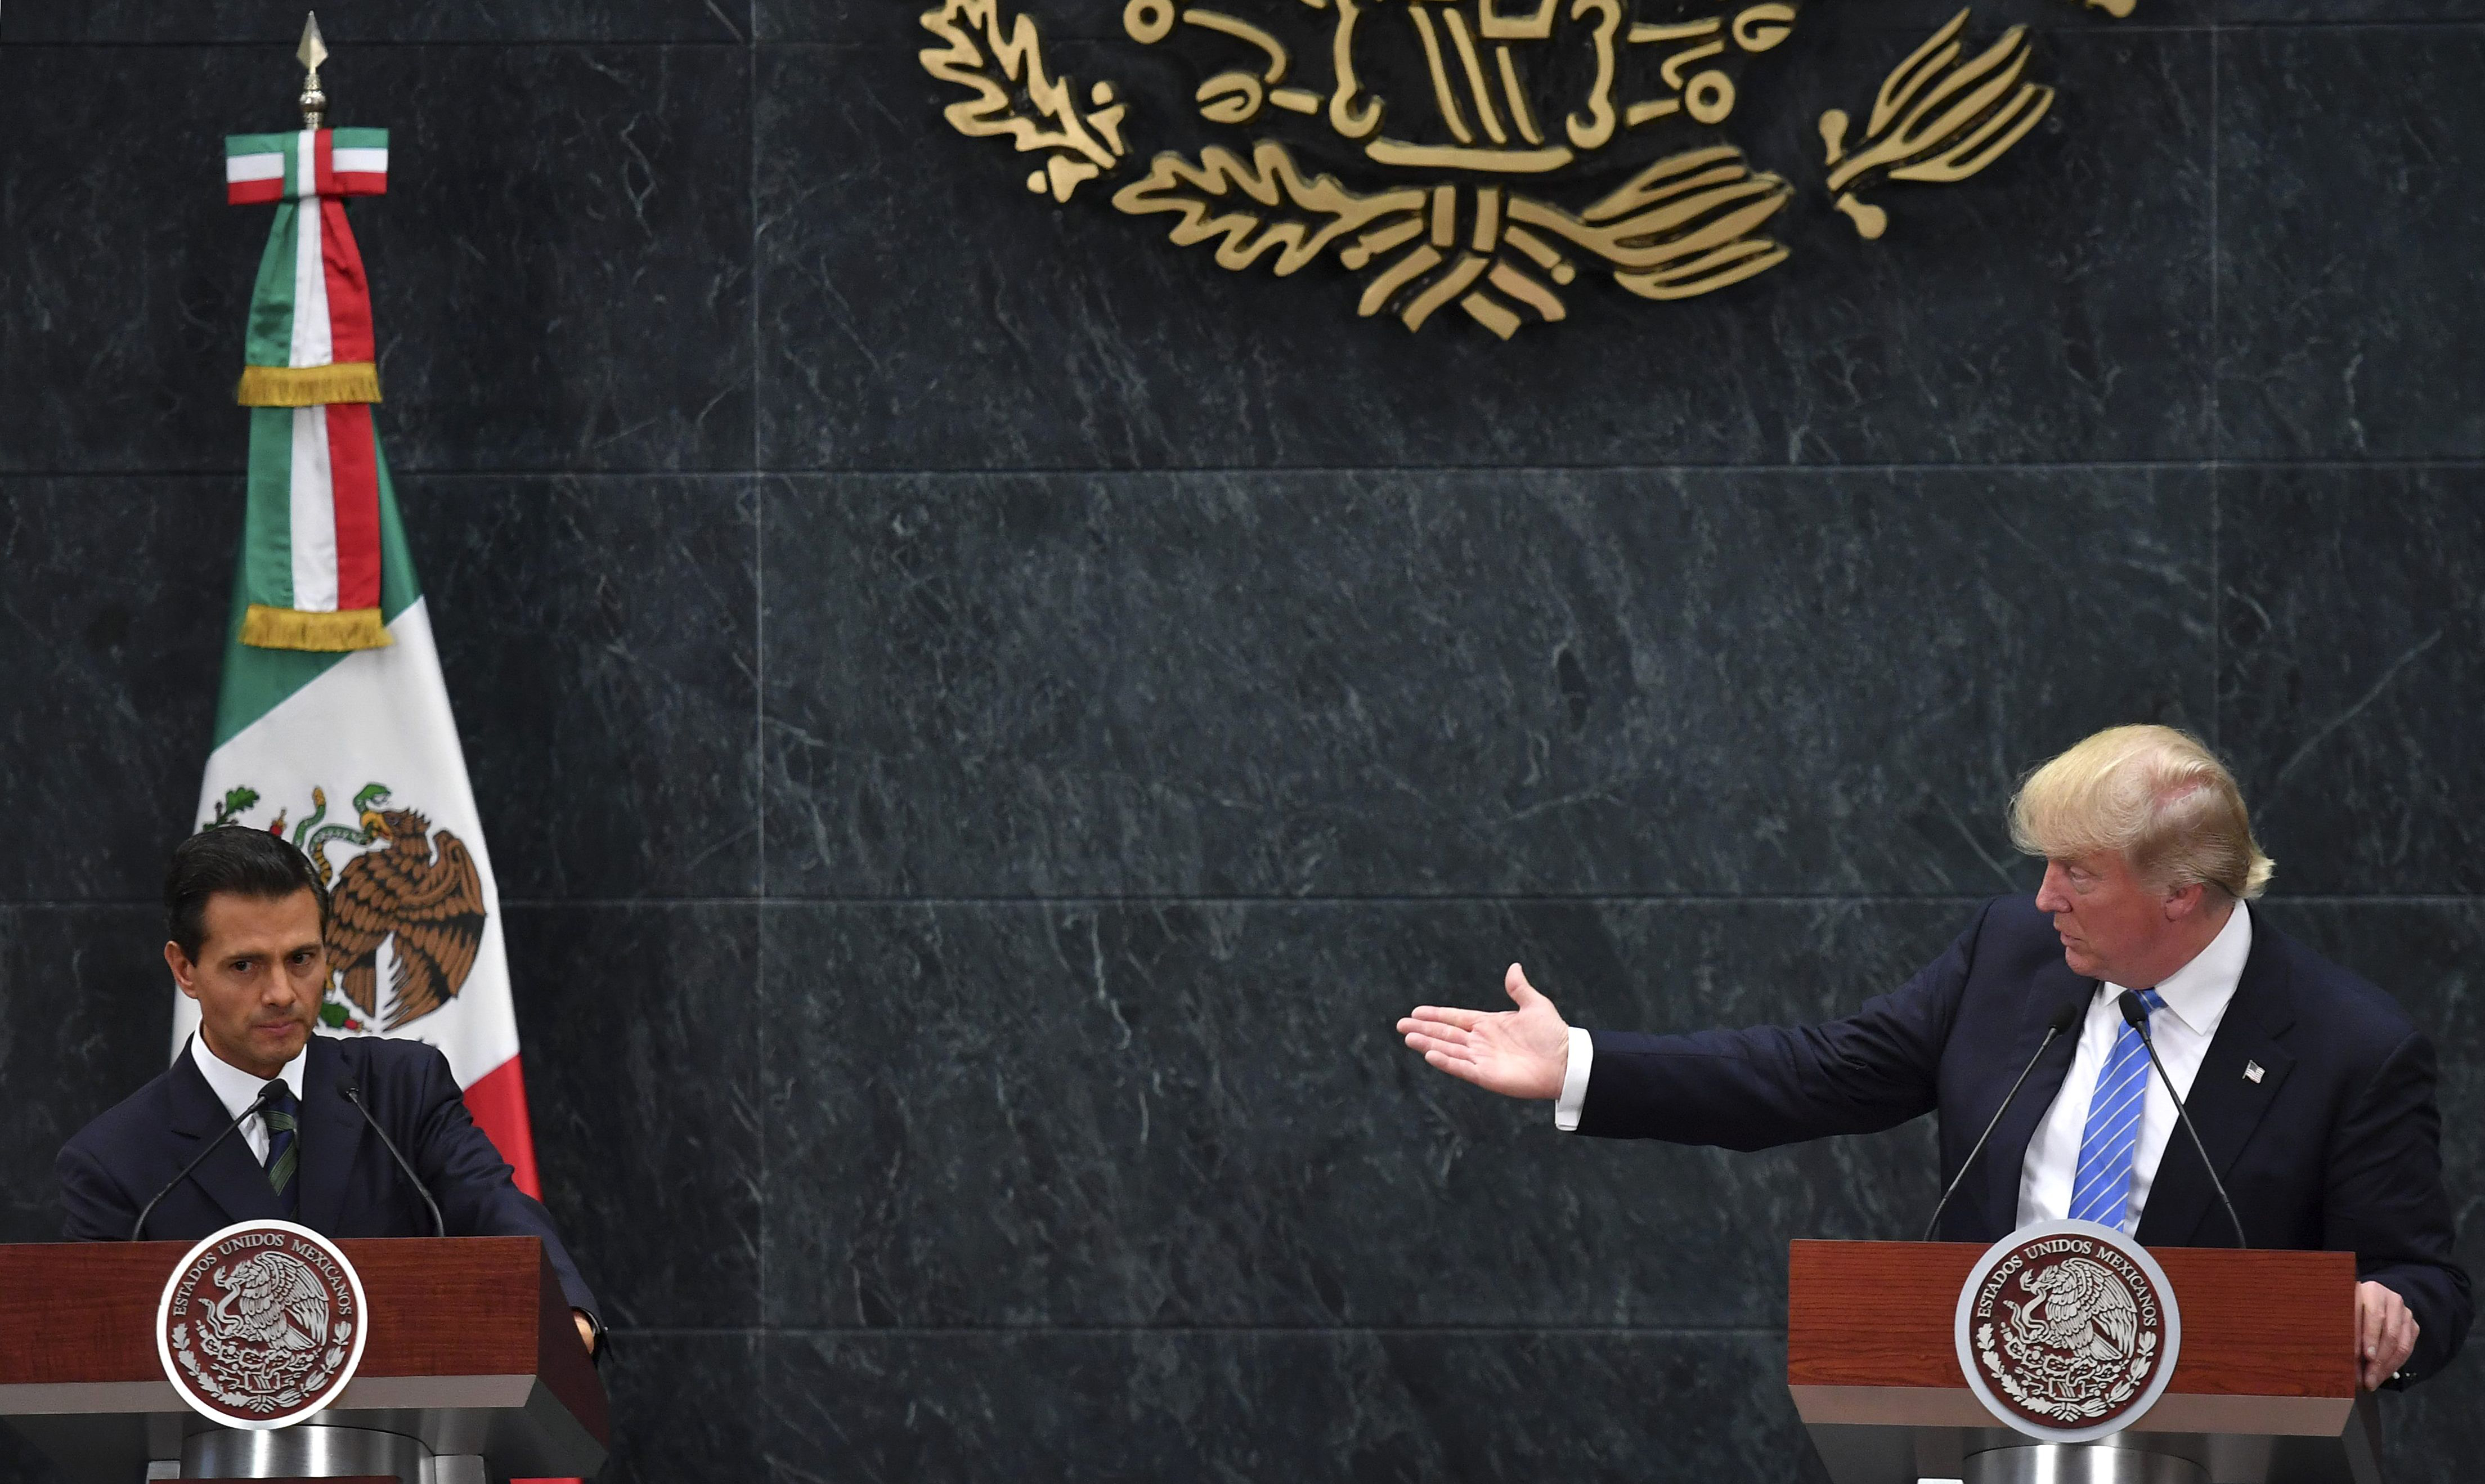 US presidential candidate Donald Trump (R) delivers a joint press conference with Mexican President Enrique Pena Nieto in Mexico City on Aug. 31, 2016.